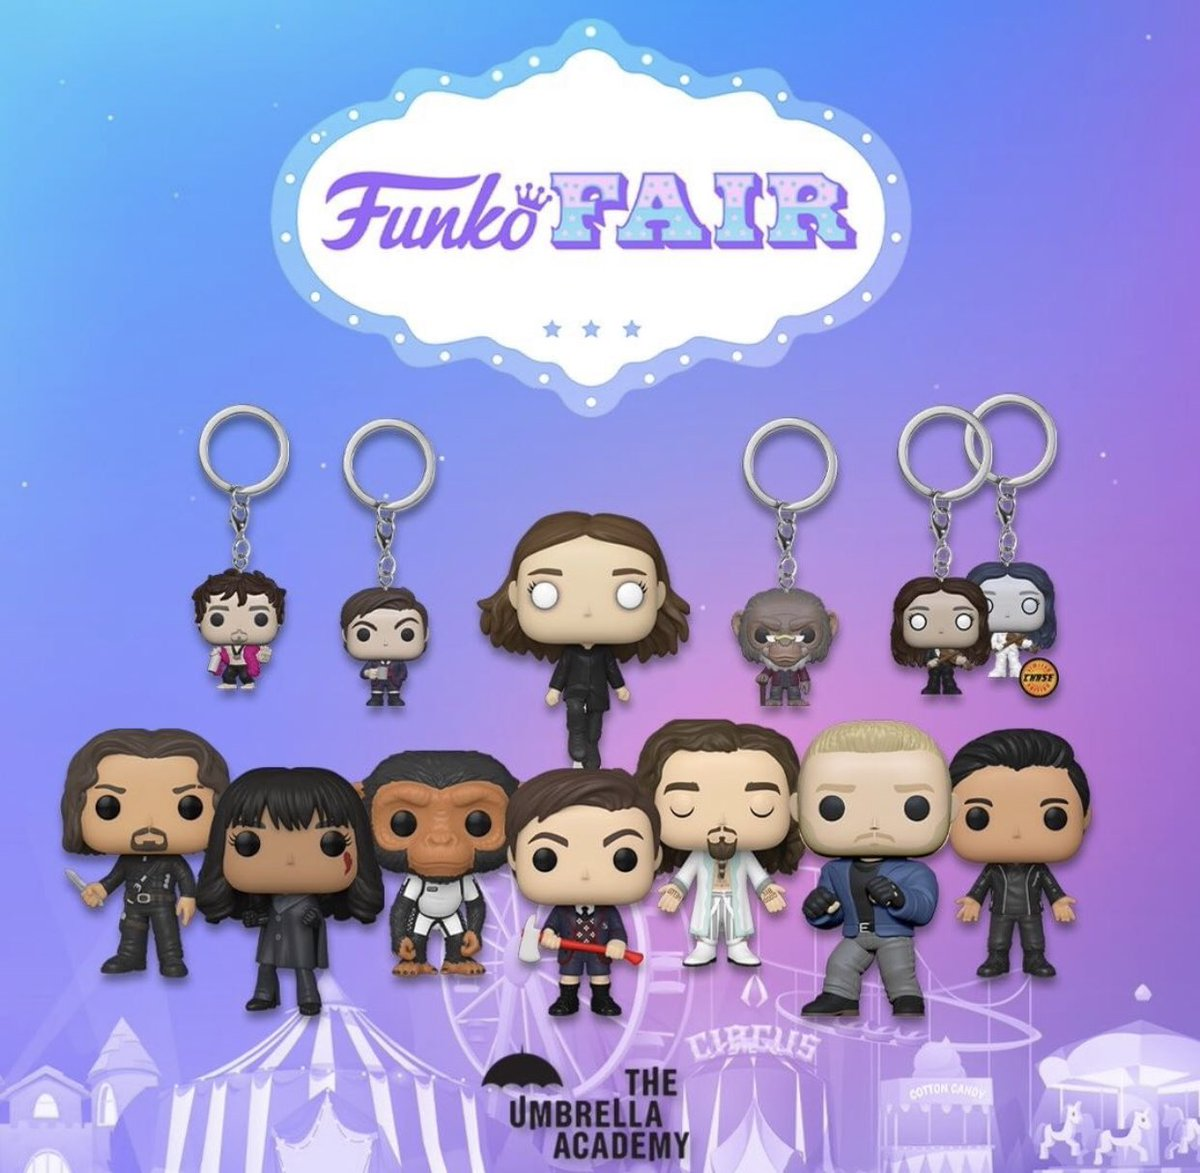 Pre order now on @zavvi  Use code ACCUSTOMS for free shipping  ✅ Pre Order Here ⬇️   #theumbrellaacademy #umbrellaacademy #funko #funkopopvinyl #funkonews #funkoeurope #funkofair #netflix